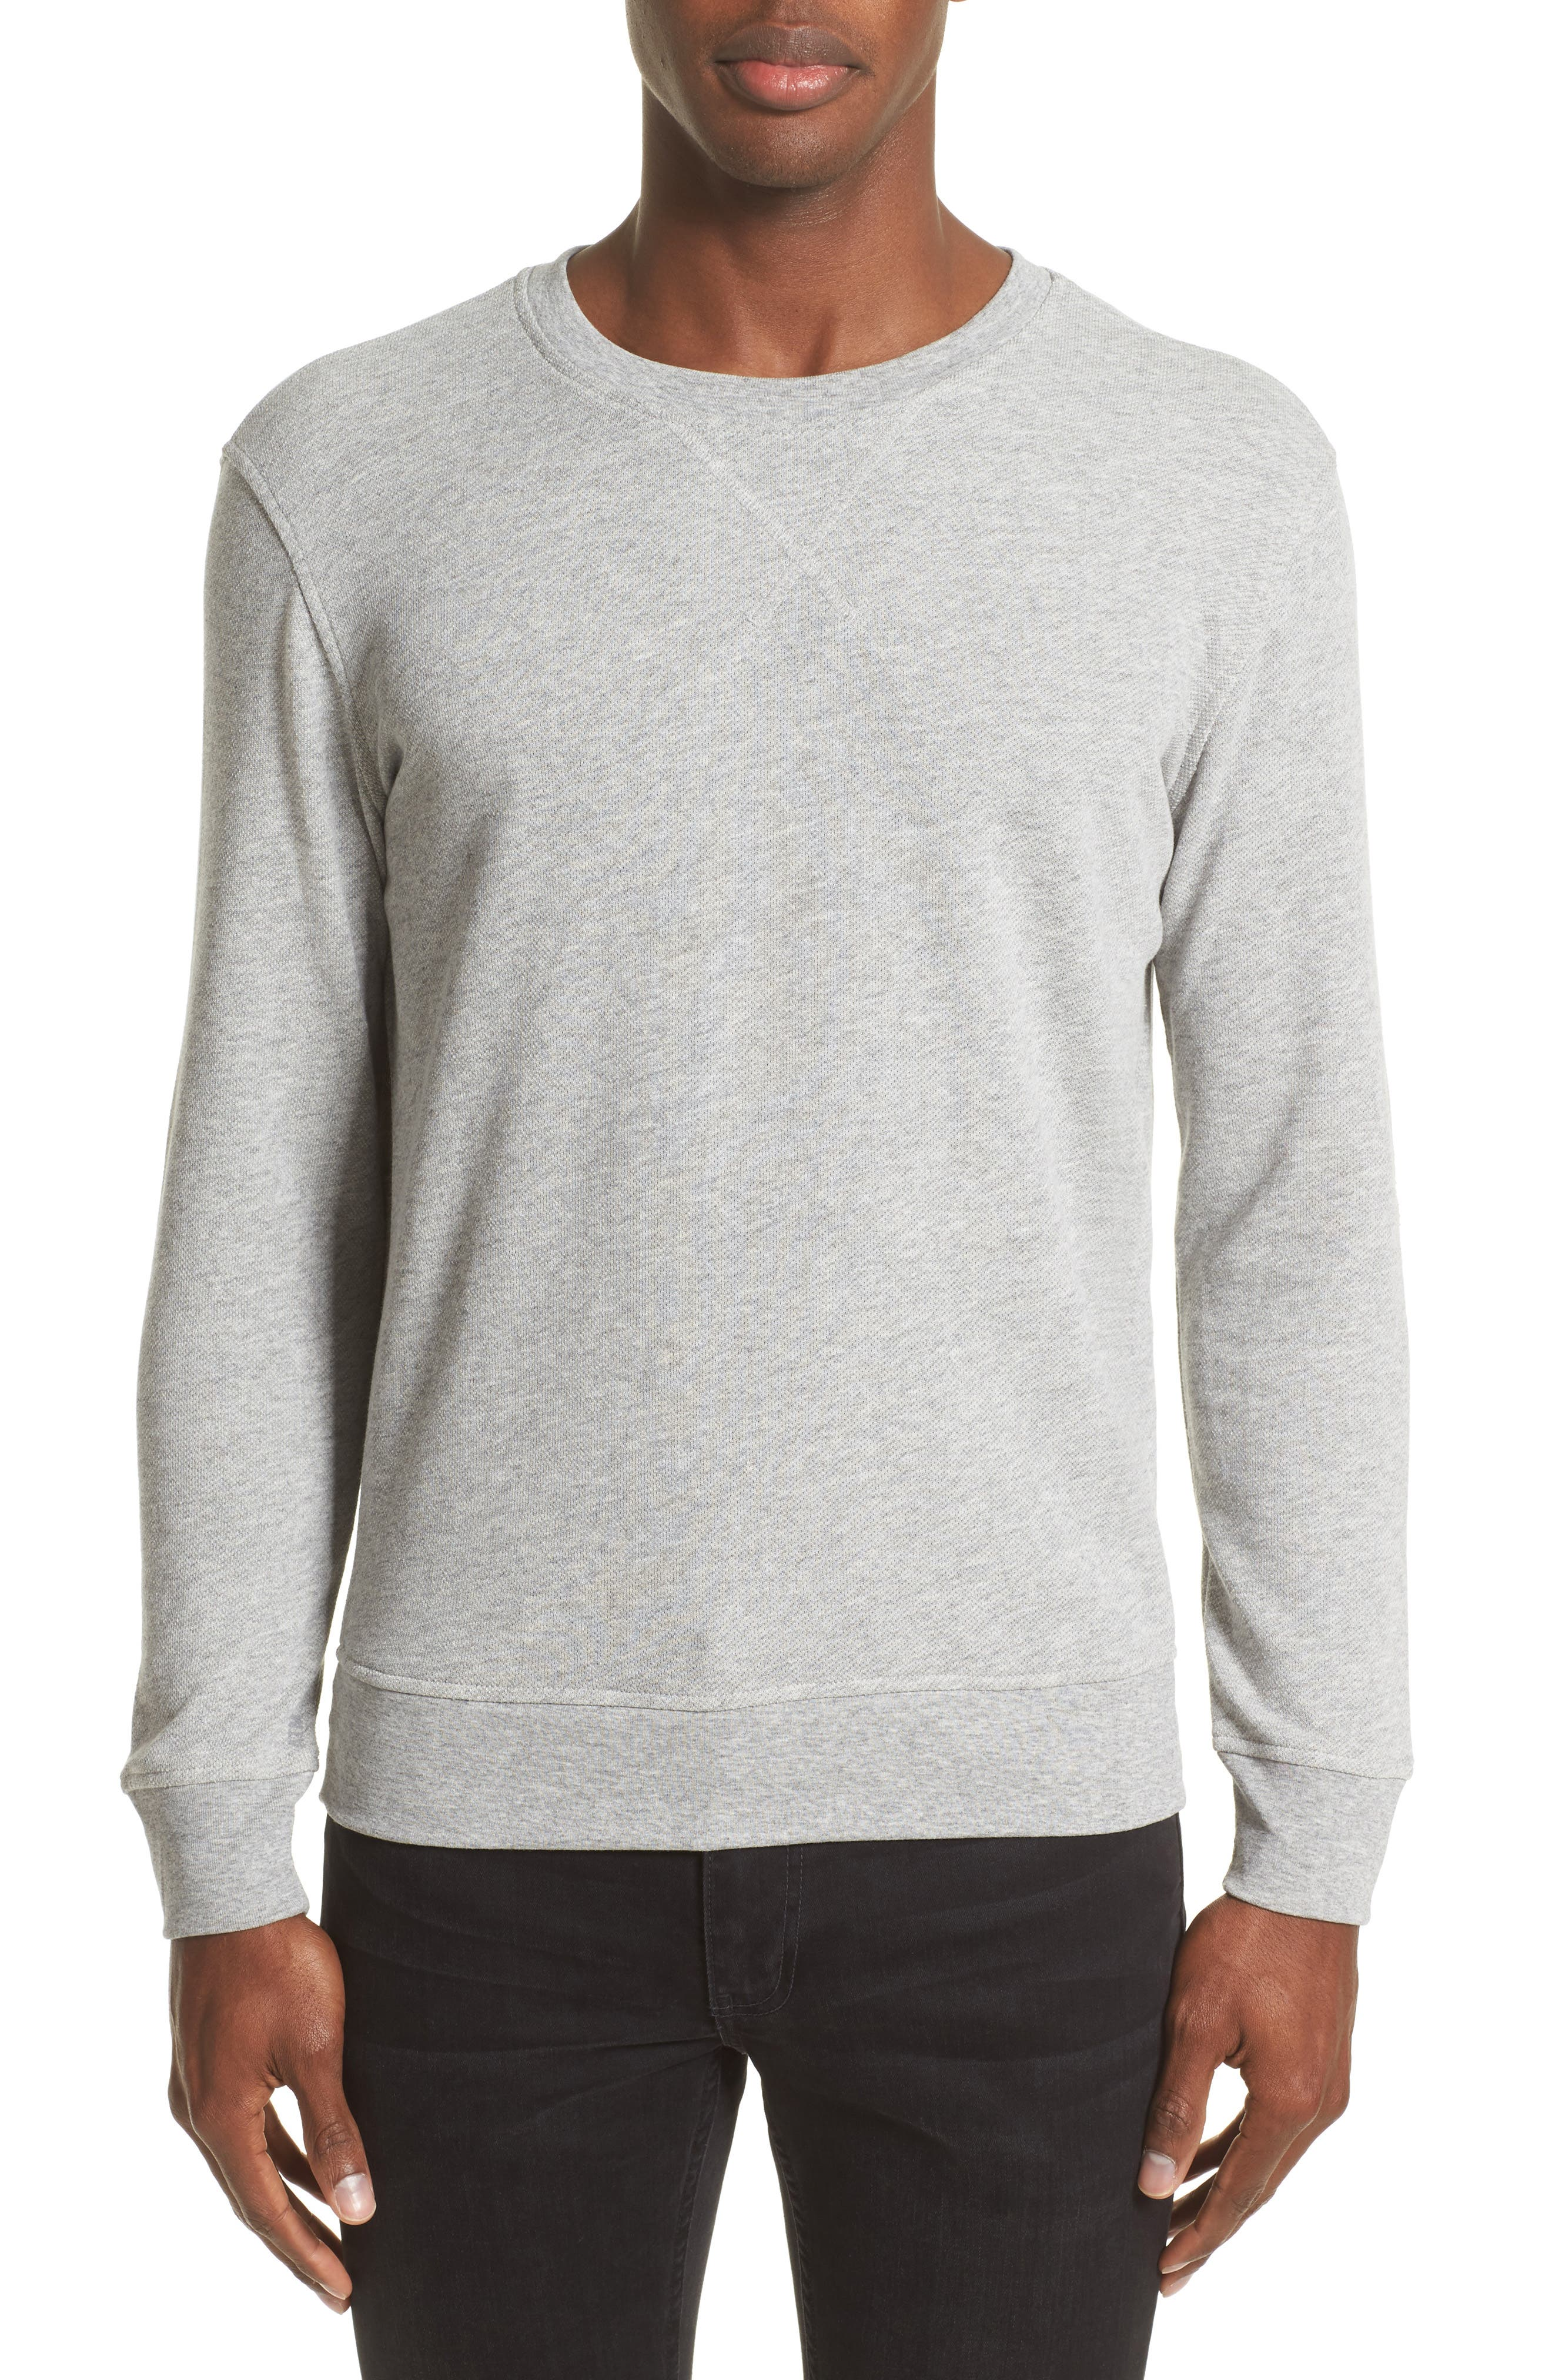 French Terry Sweatshirt,                             Main thumbnail 1, color,                             050